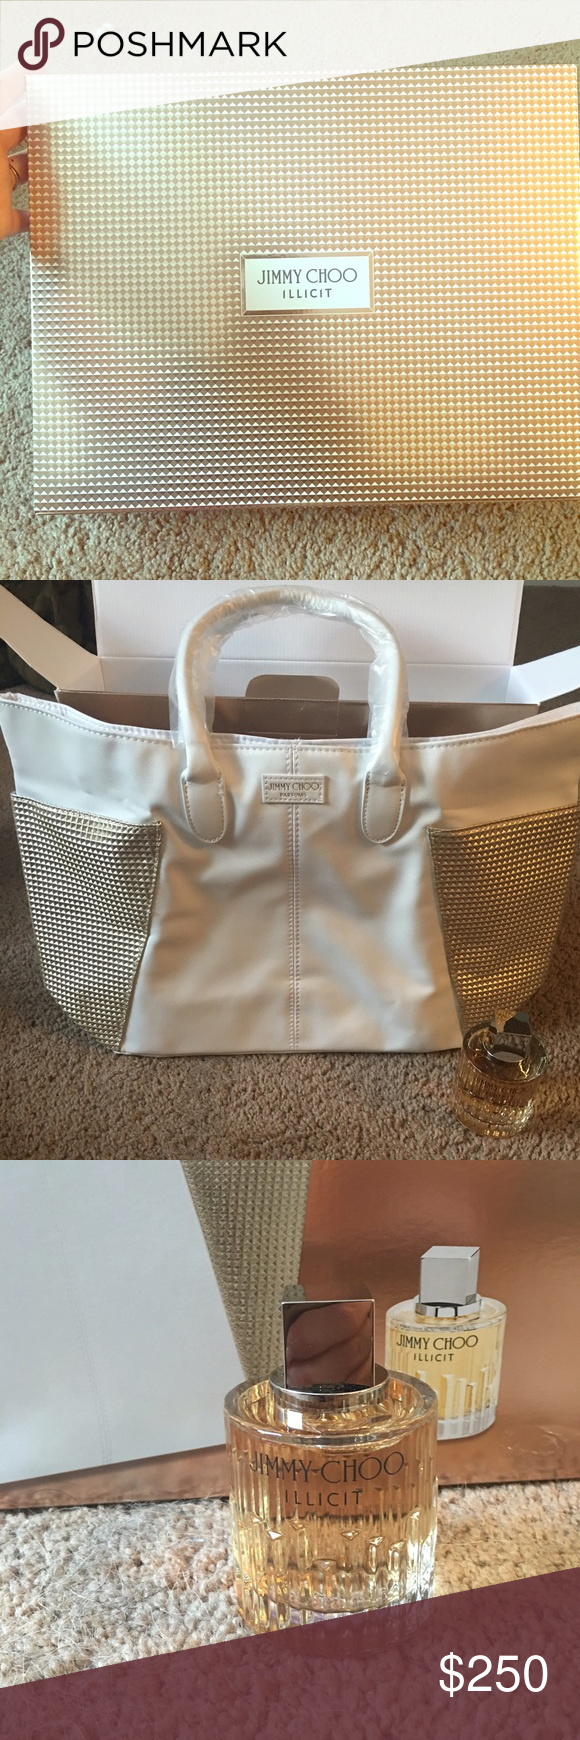 Jimmy Choo Bundle !!! A gorgeous NWT White leather and gold pleet Jimmy Choo tote with the newest perfume (perfume alone retails for over $120) called Illicit! This is a gorgeous duo bundle and you can grab it for your own here! Very hard to find! WILL SEPARATE ***TAKING OFFERS*** NOTE: NO LOWBALLING please be considerate, and NO trades on NWT items! Jimmy Choo Bags Totes